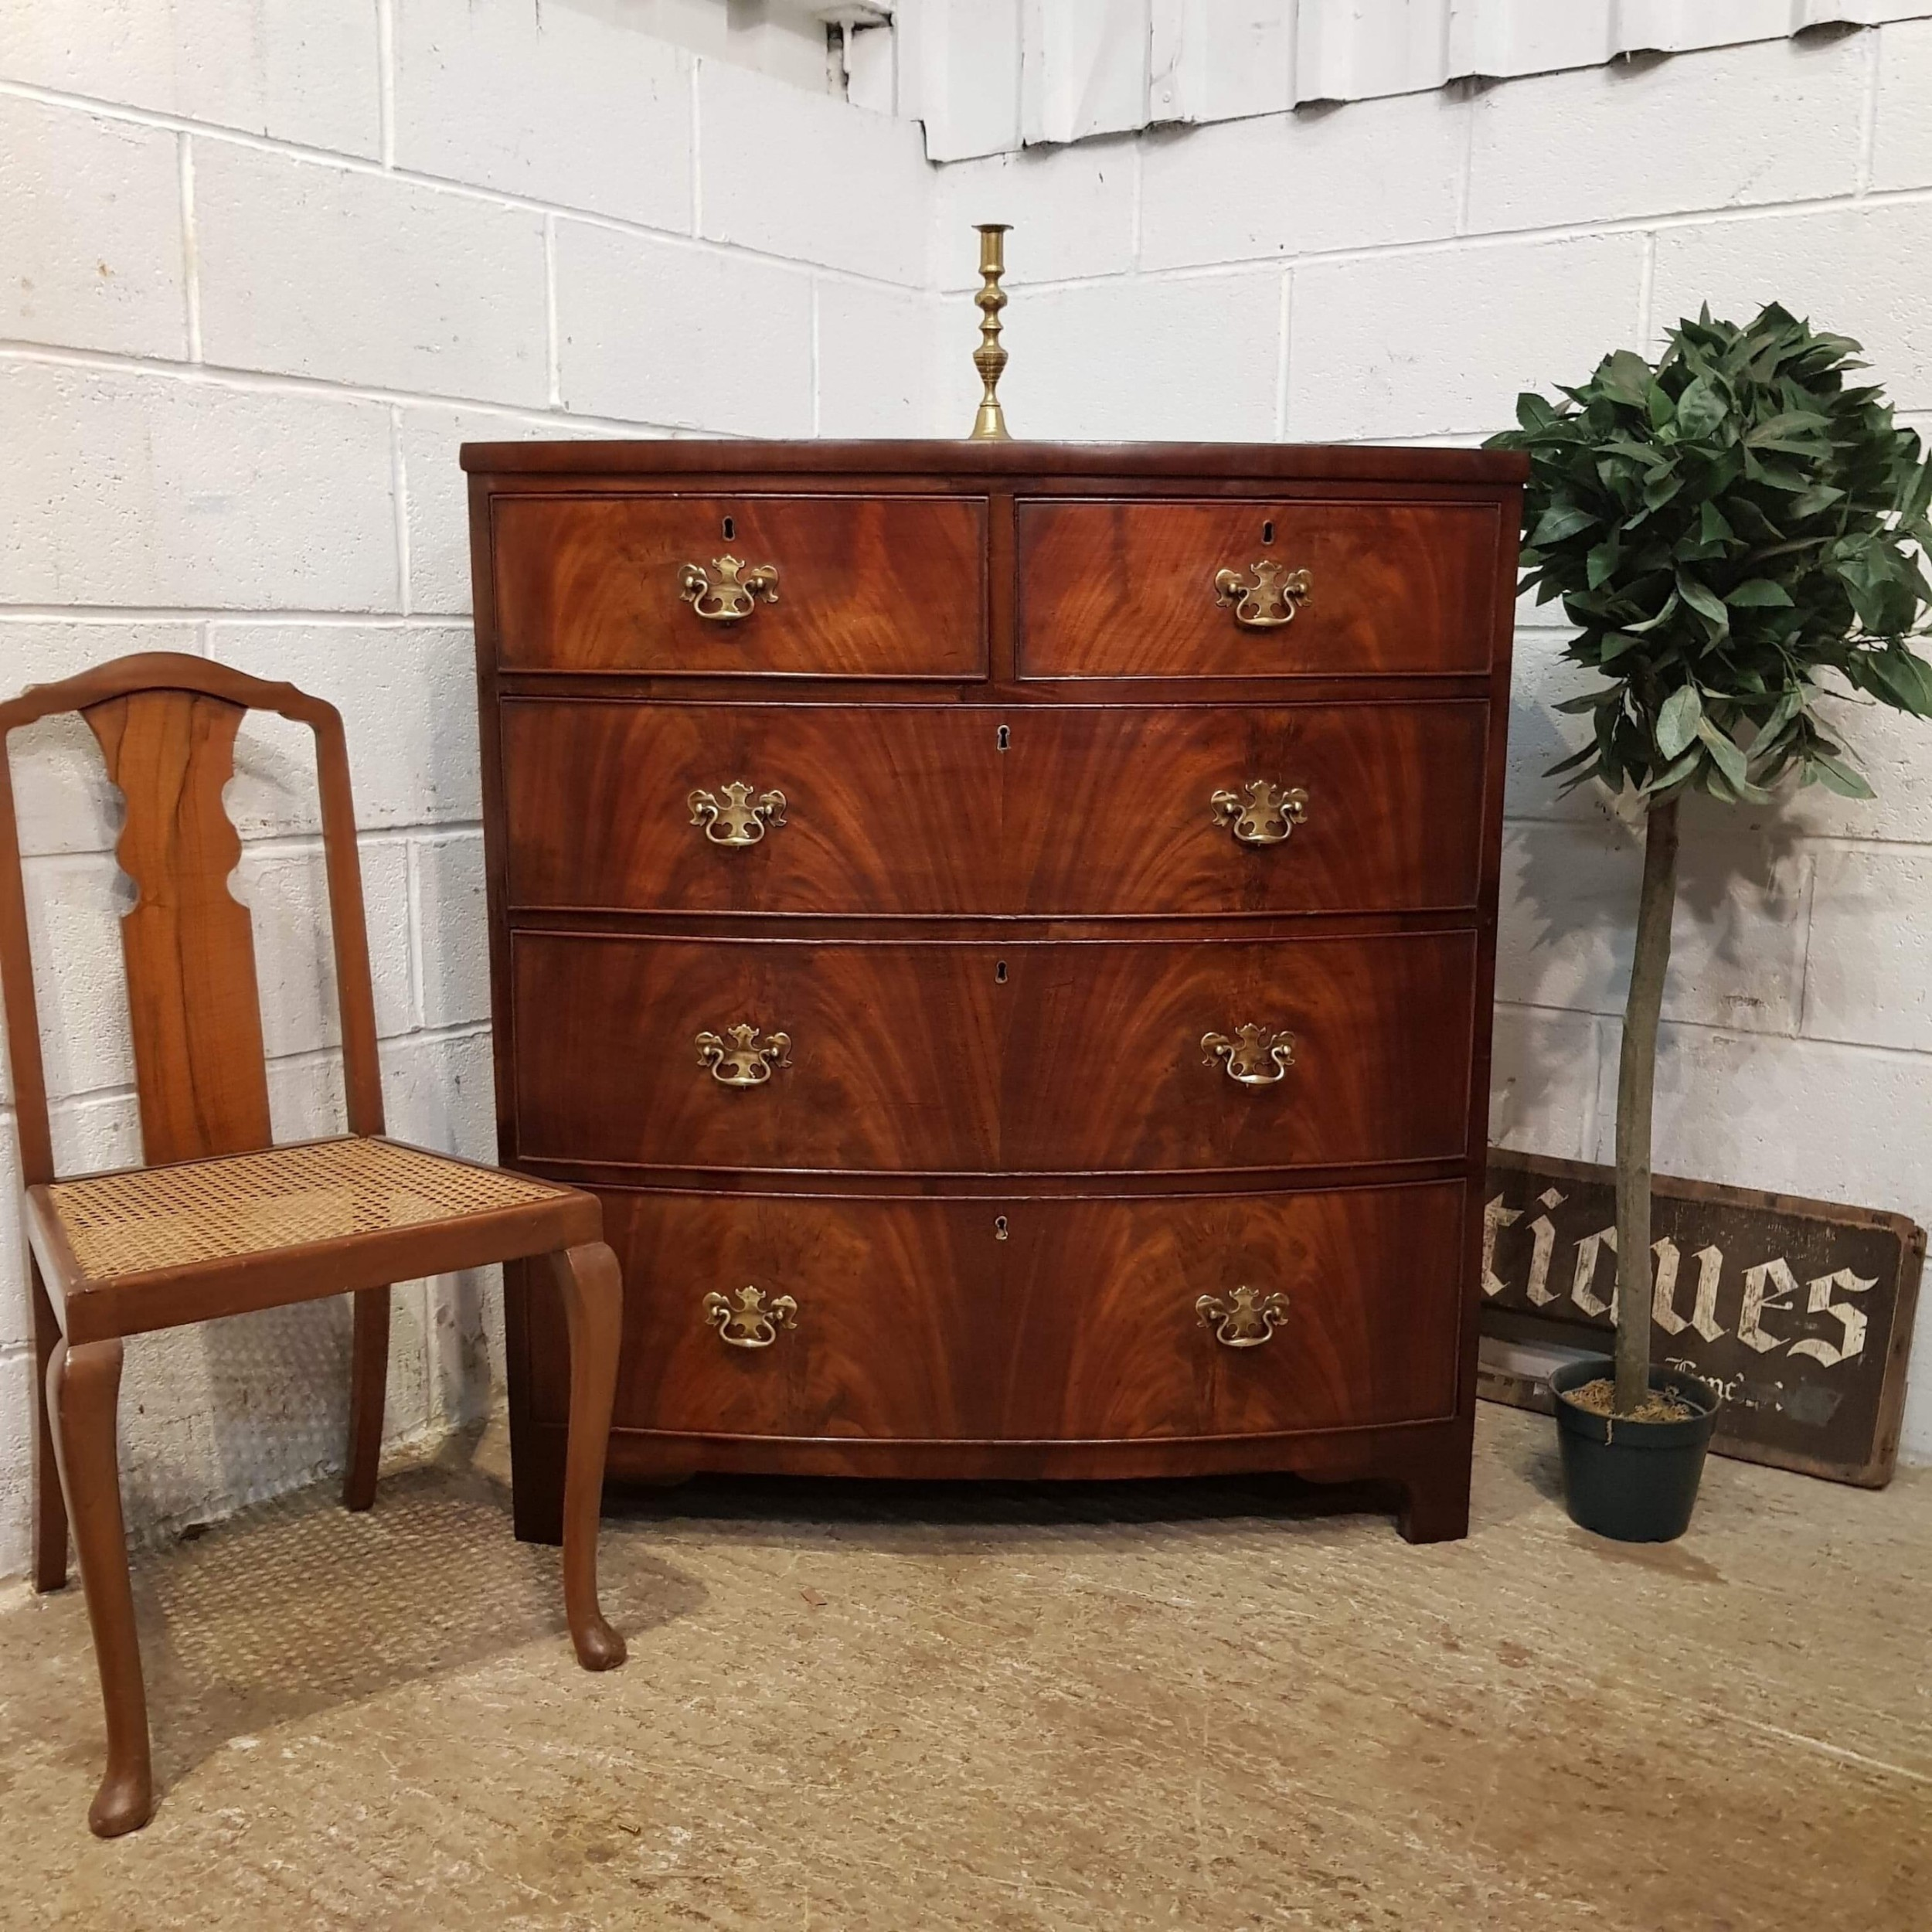 antique regency mahogany bow front chest of drawers c1820